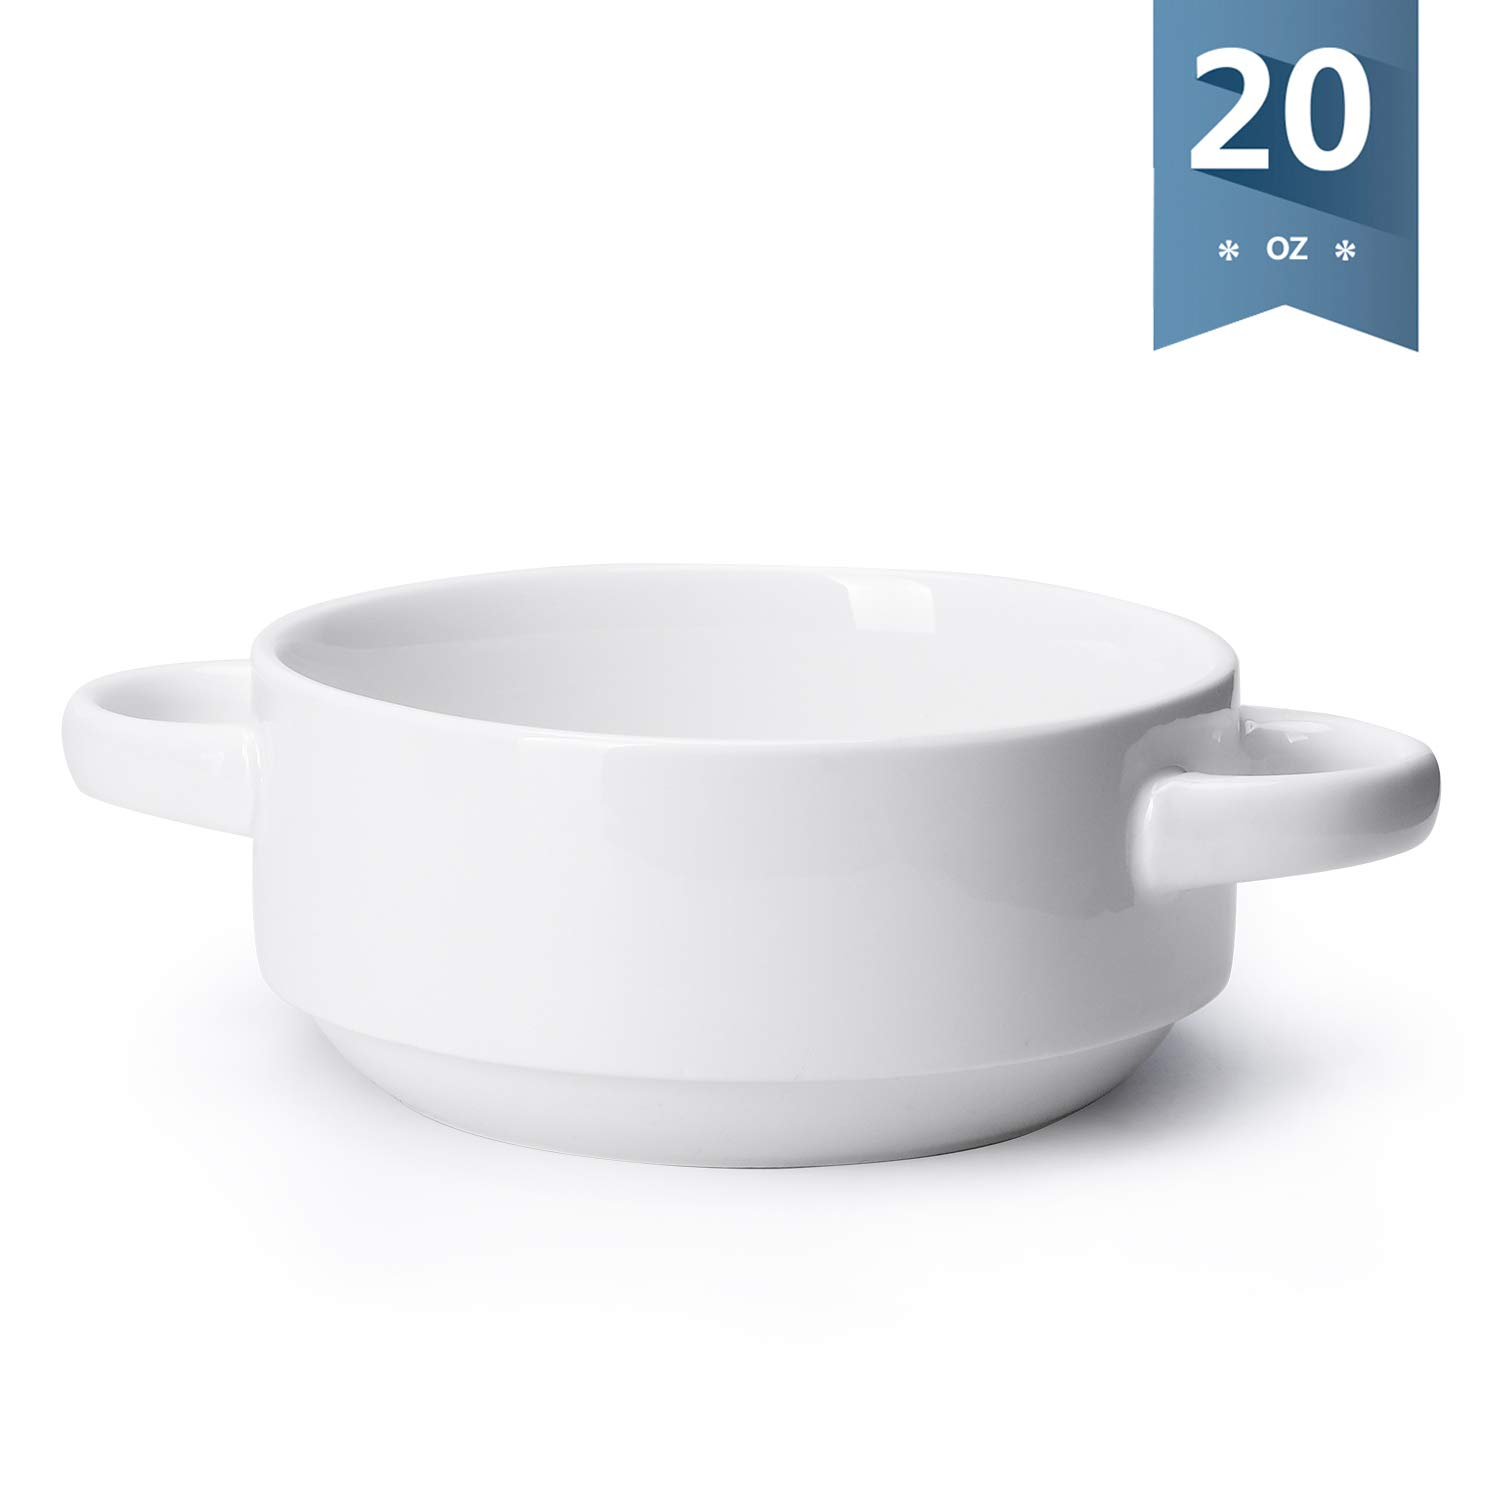 Sweese 108.000 Porcelain Bowl with Handles - 20 Ounce for Soup, Cereal, Stew, Chill, Set of 1, White